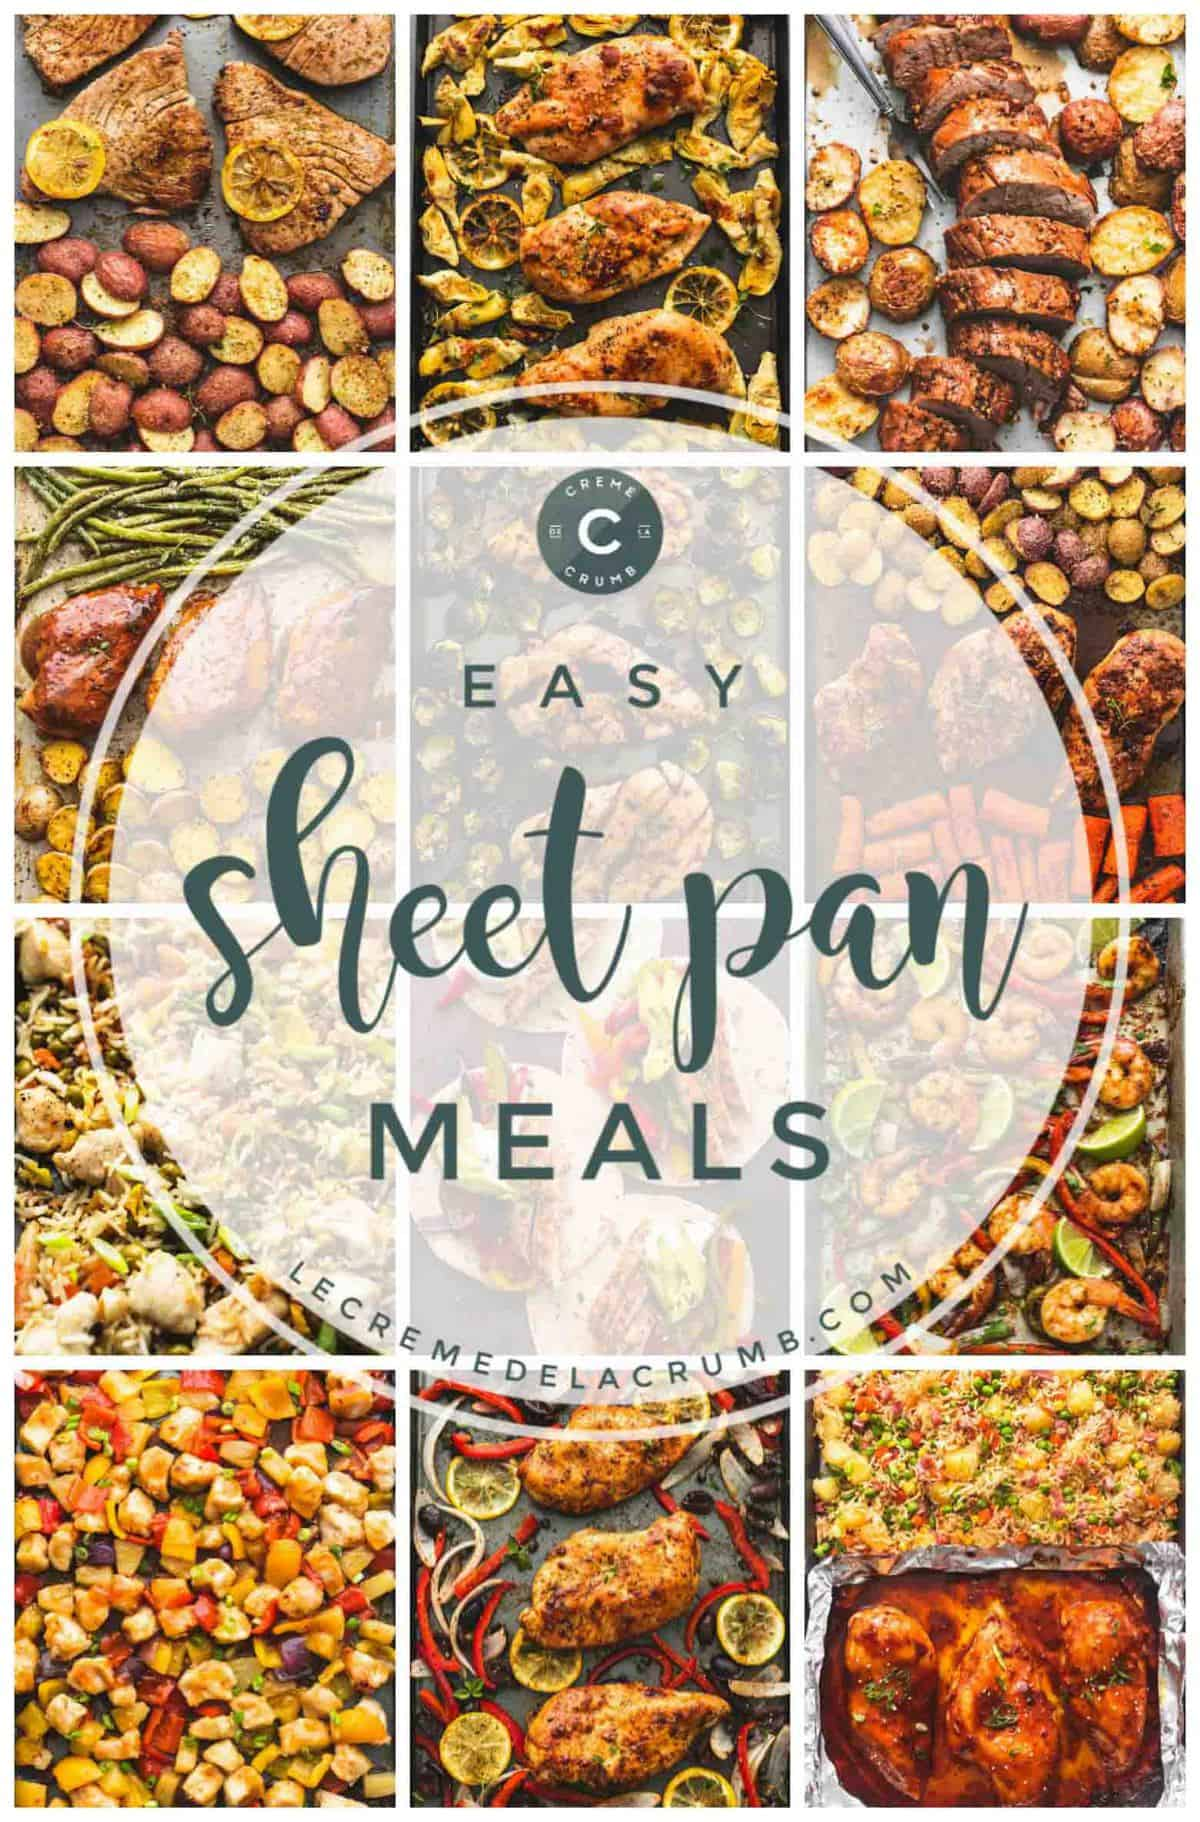 """an image of the cover of the """"Easy Sheet Pan Meals"""" cookbook."""